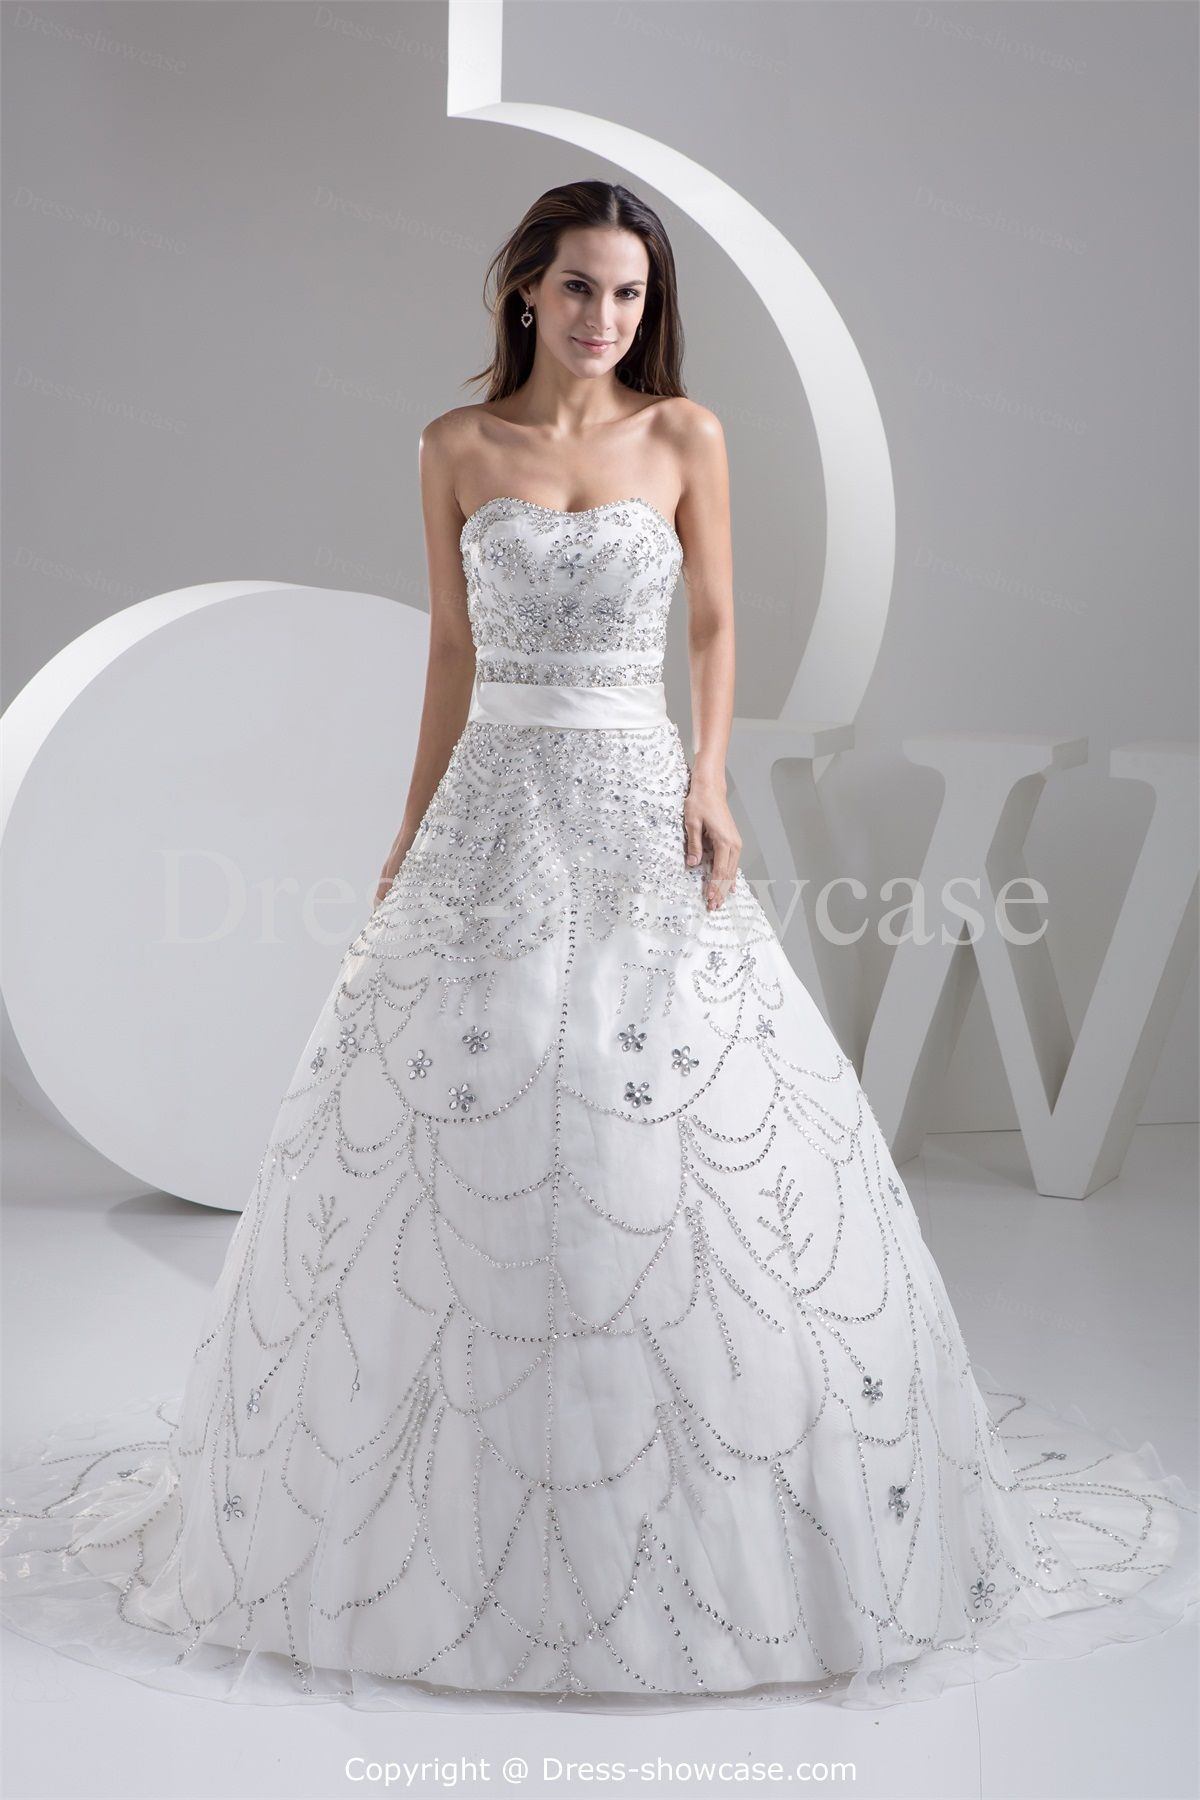 Collection White Bridal Dresses Pictures - Weddings Pro